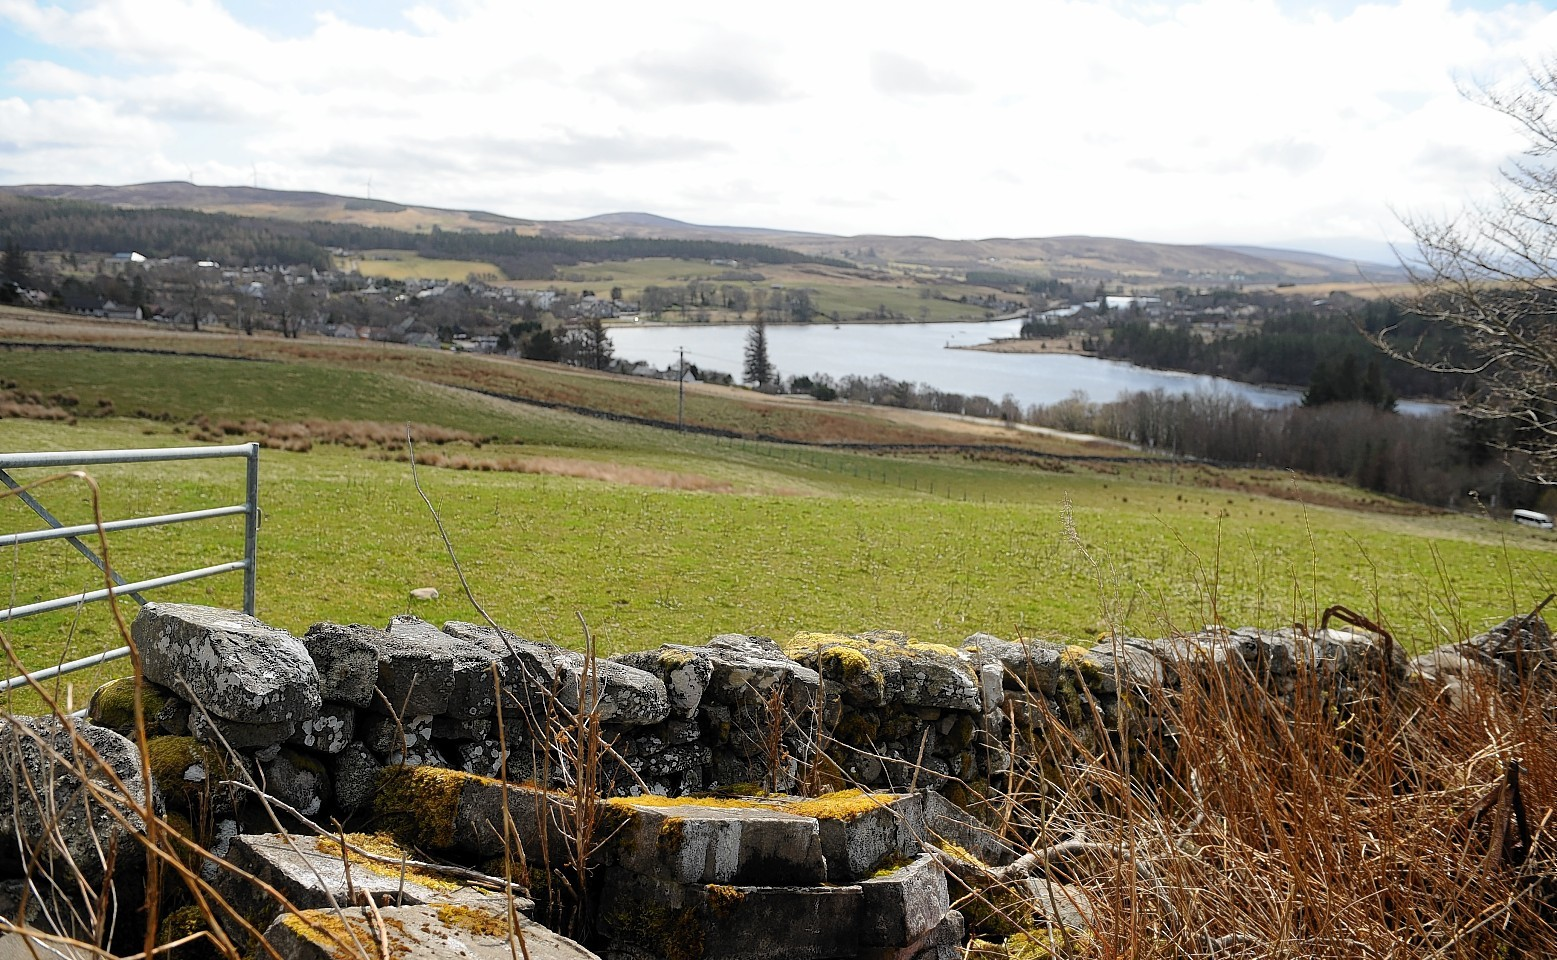 The peaceful landscape in Lairg could have been hiding an amazing secret for more than a billion years